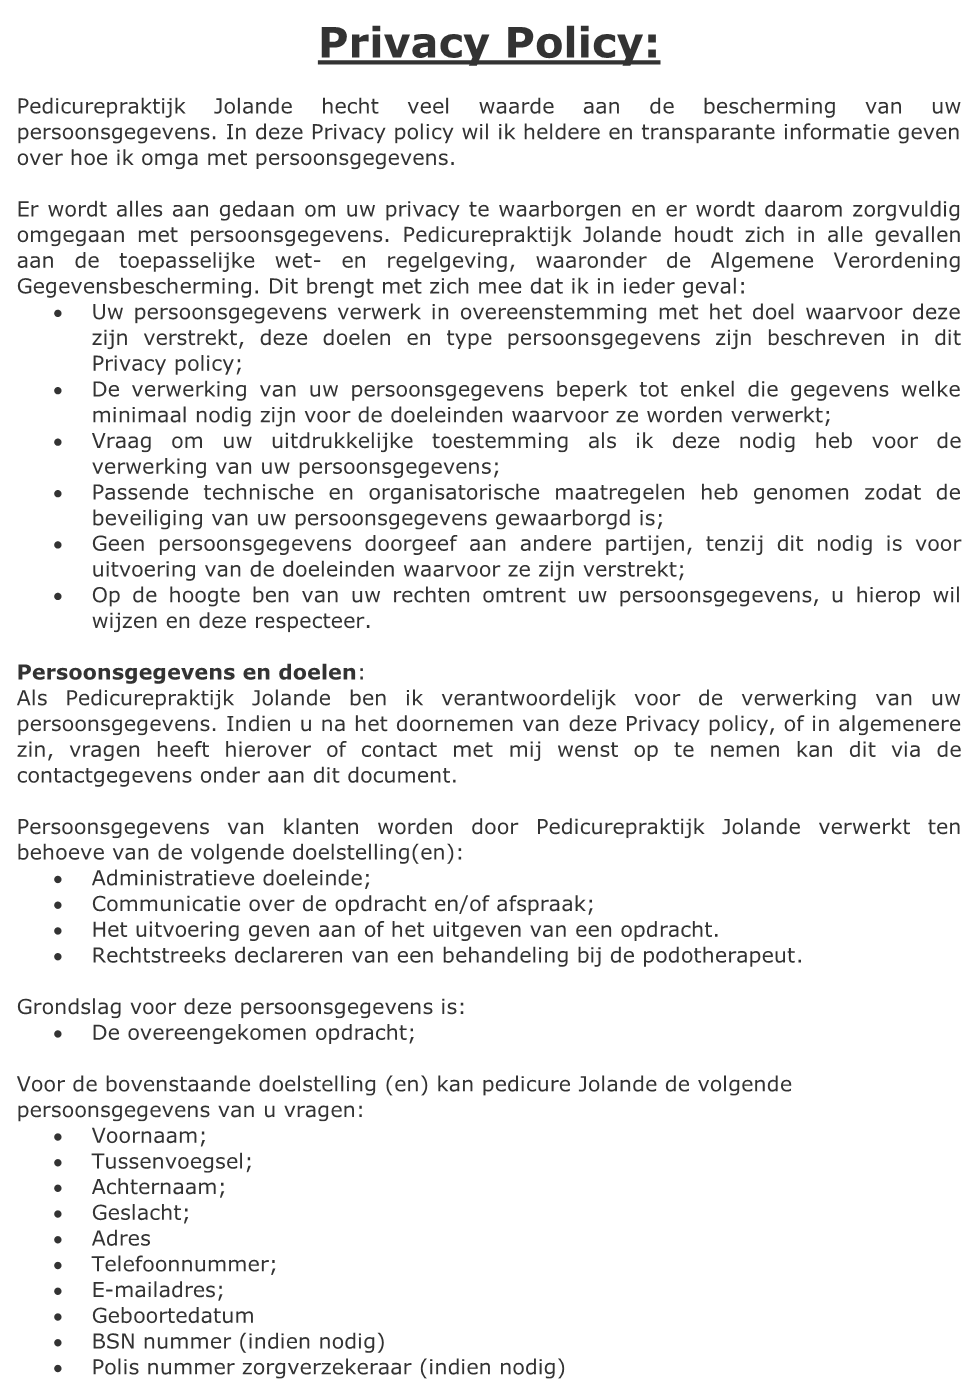 Privacy Policy Pedicurepraktijk Jolande 1